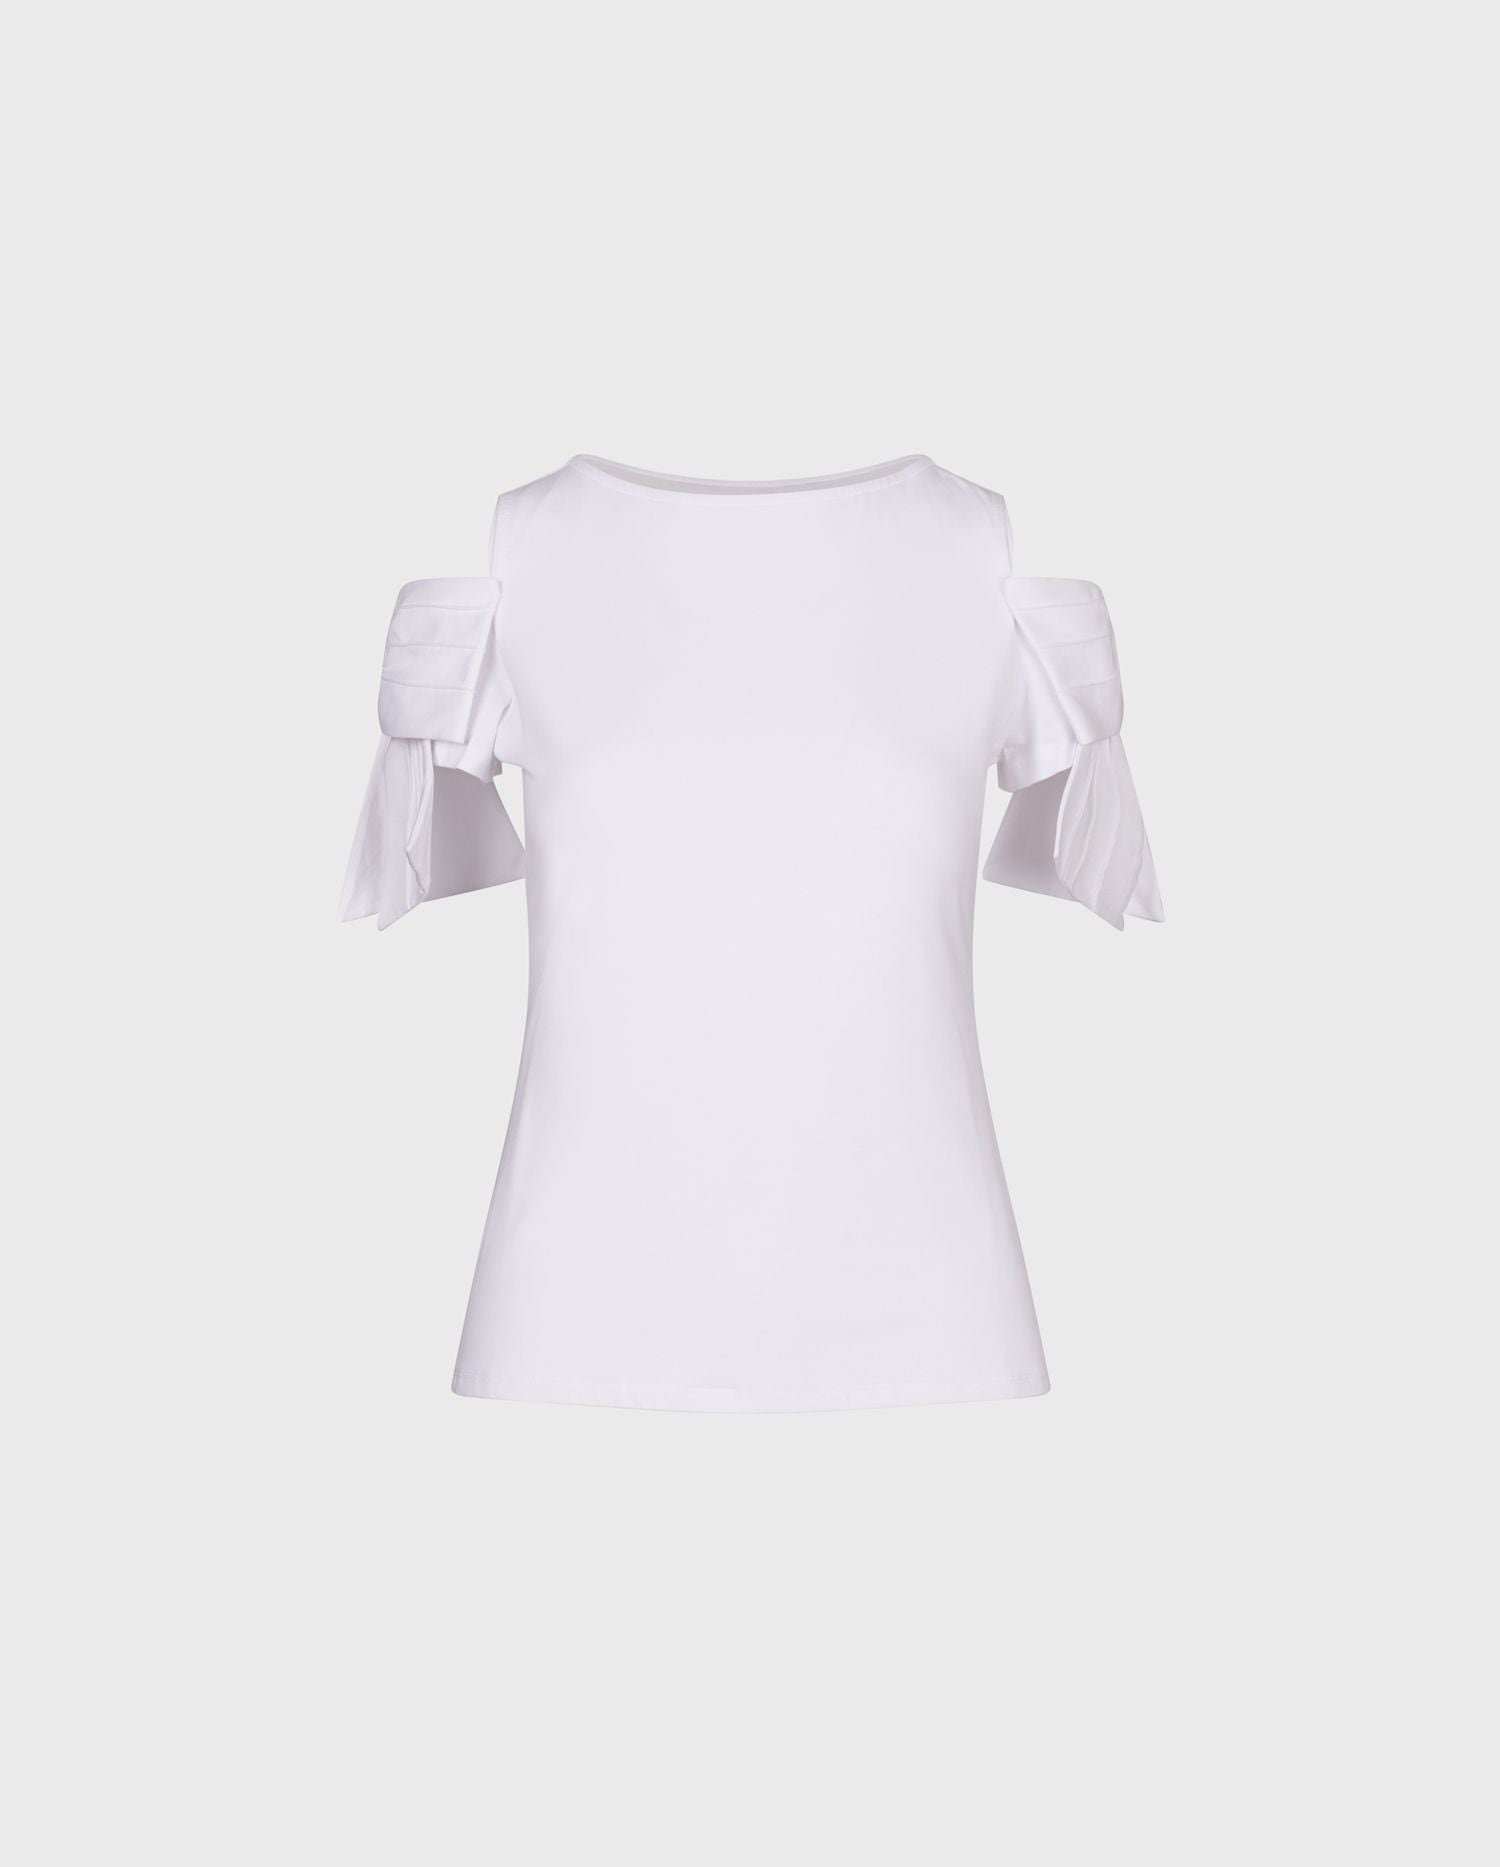 ANNE FONTAINE: MYRTILLE Top: Jersey cotton top with cold shoulders and bow detail